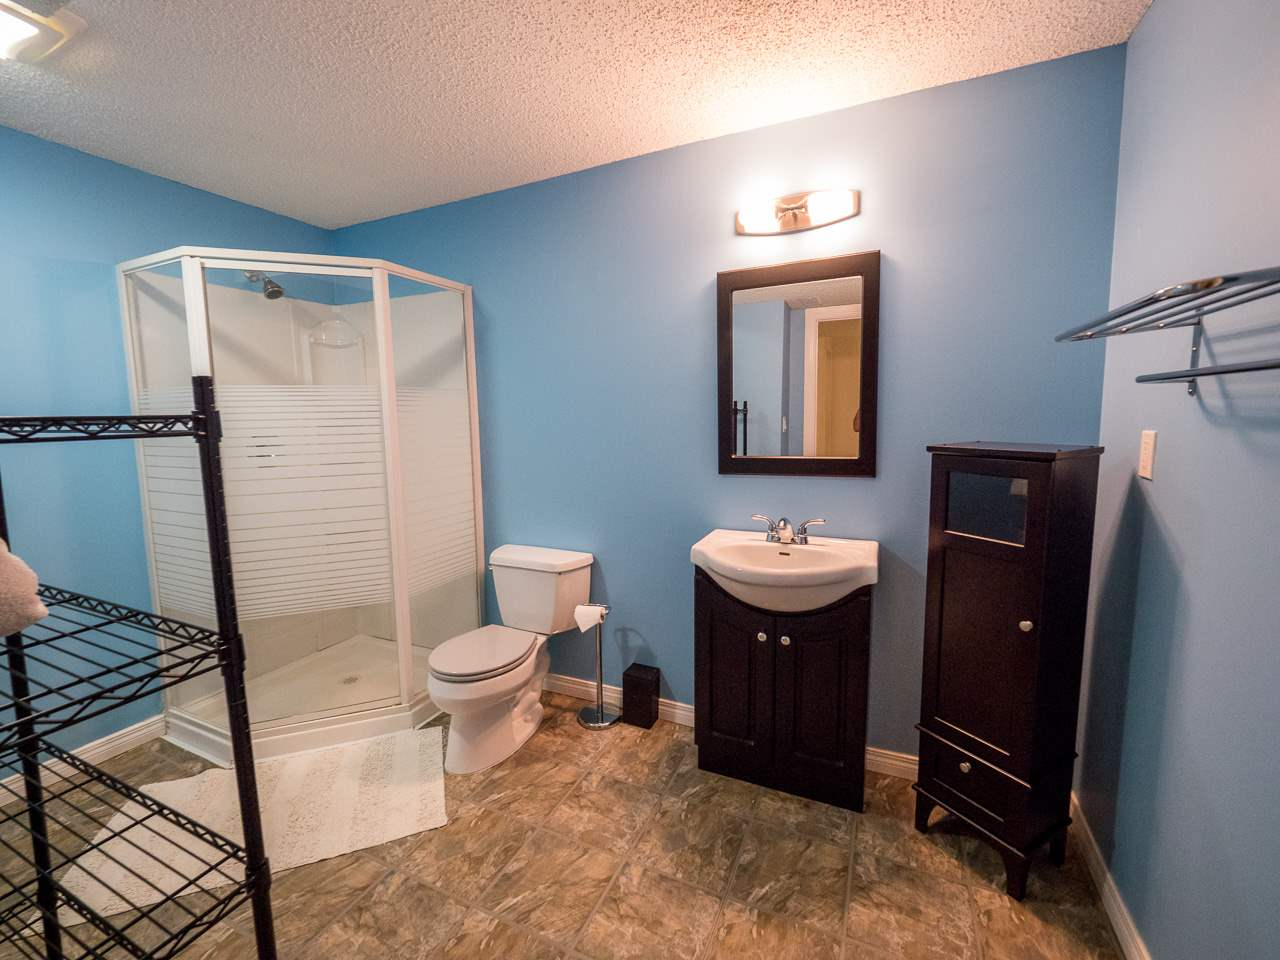 Photo 23: 205 WEBER Place in Edmonton: Zone 20 House for sale : MLS® # E4077601